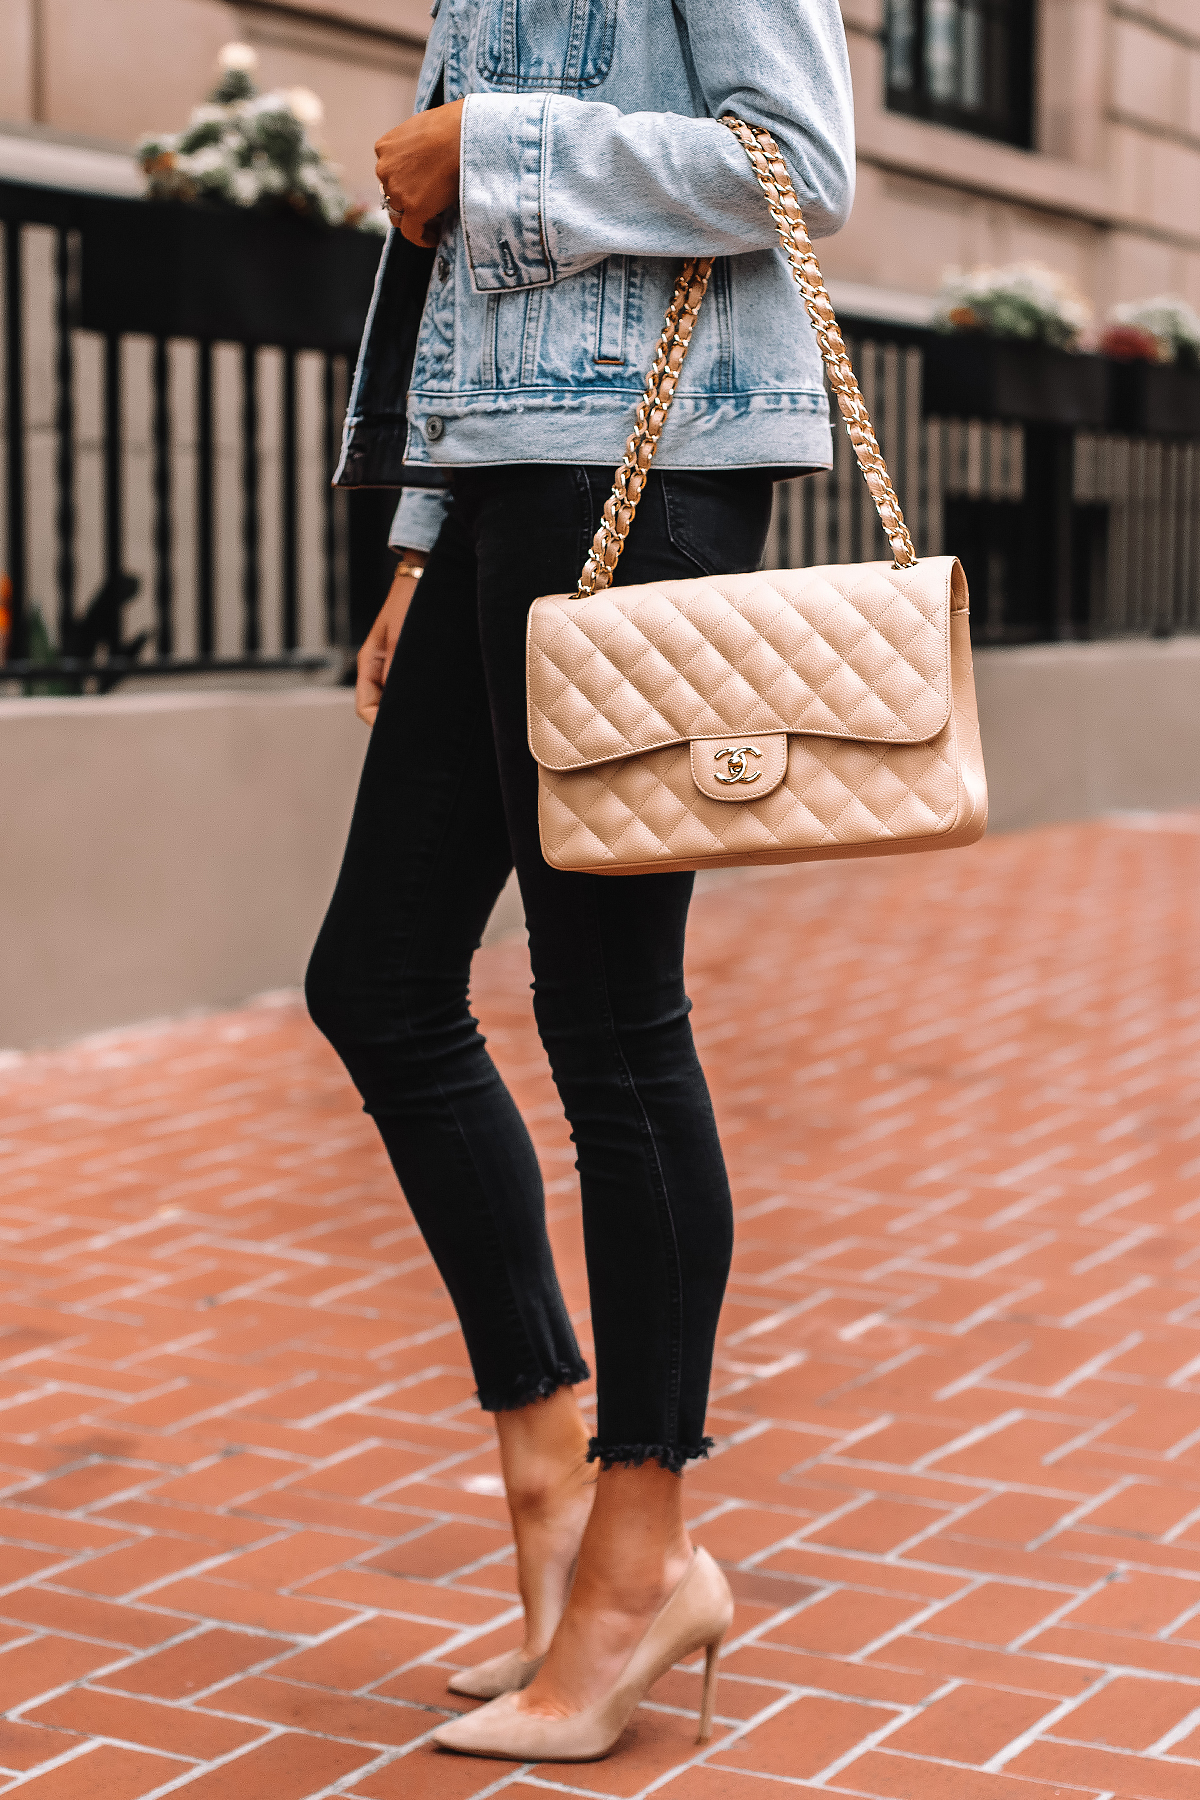 Fashion Jackson Wearing Denim Jacket Black Raw Hem Skinny Jeans Nude Pumps Chanel Jumbo Beige Clair Handbag